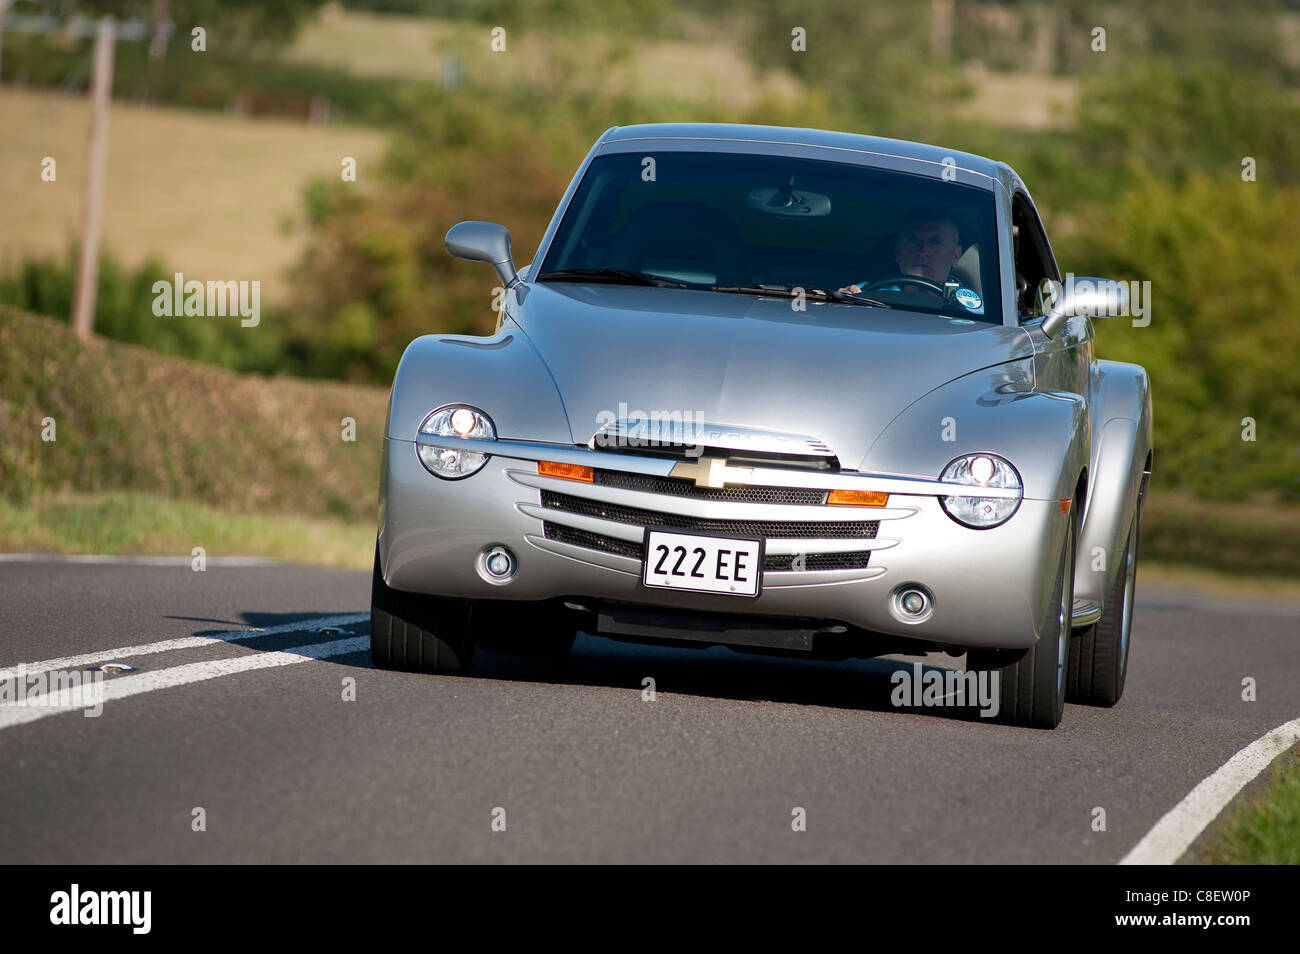 Silver Chevrolet SSR (Super Sport Roadster) being driven on a road in England. - Stock Image